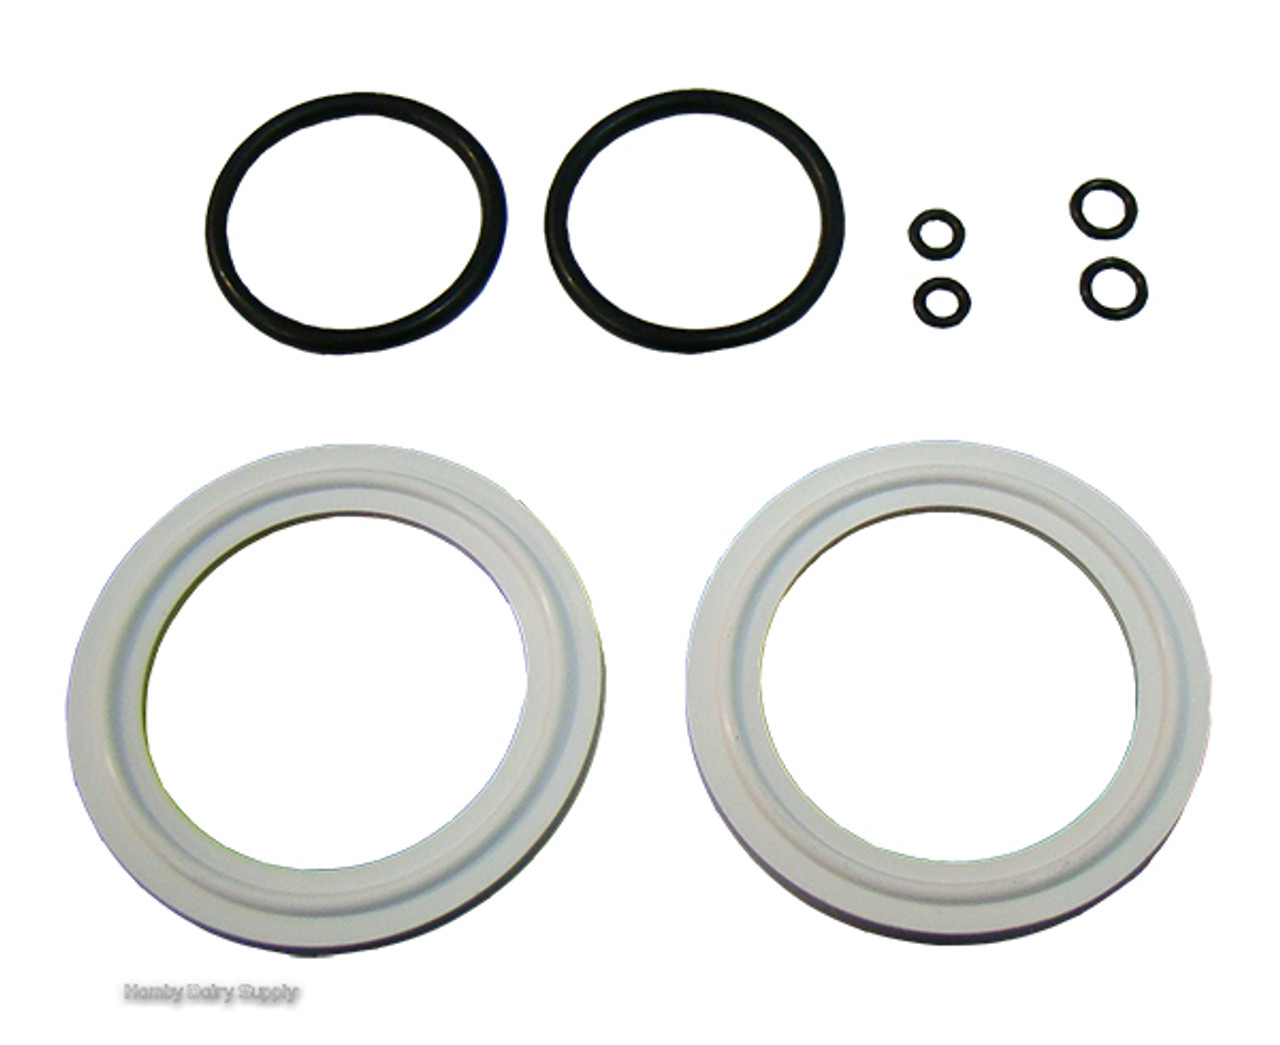 O-RING kit for Mueller Style 2 inch Milk Tank Valve - Hamby Dairy Supply